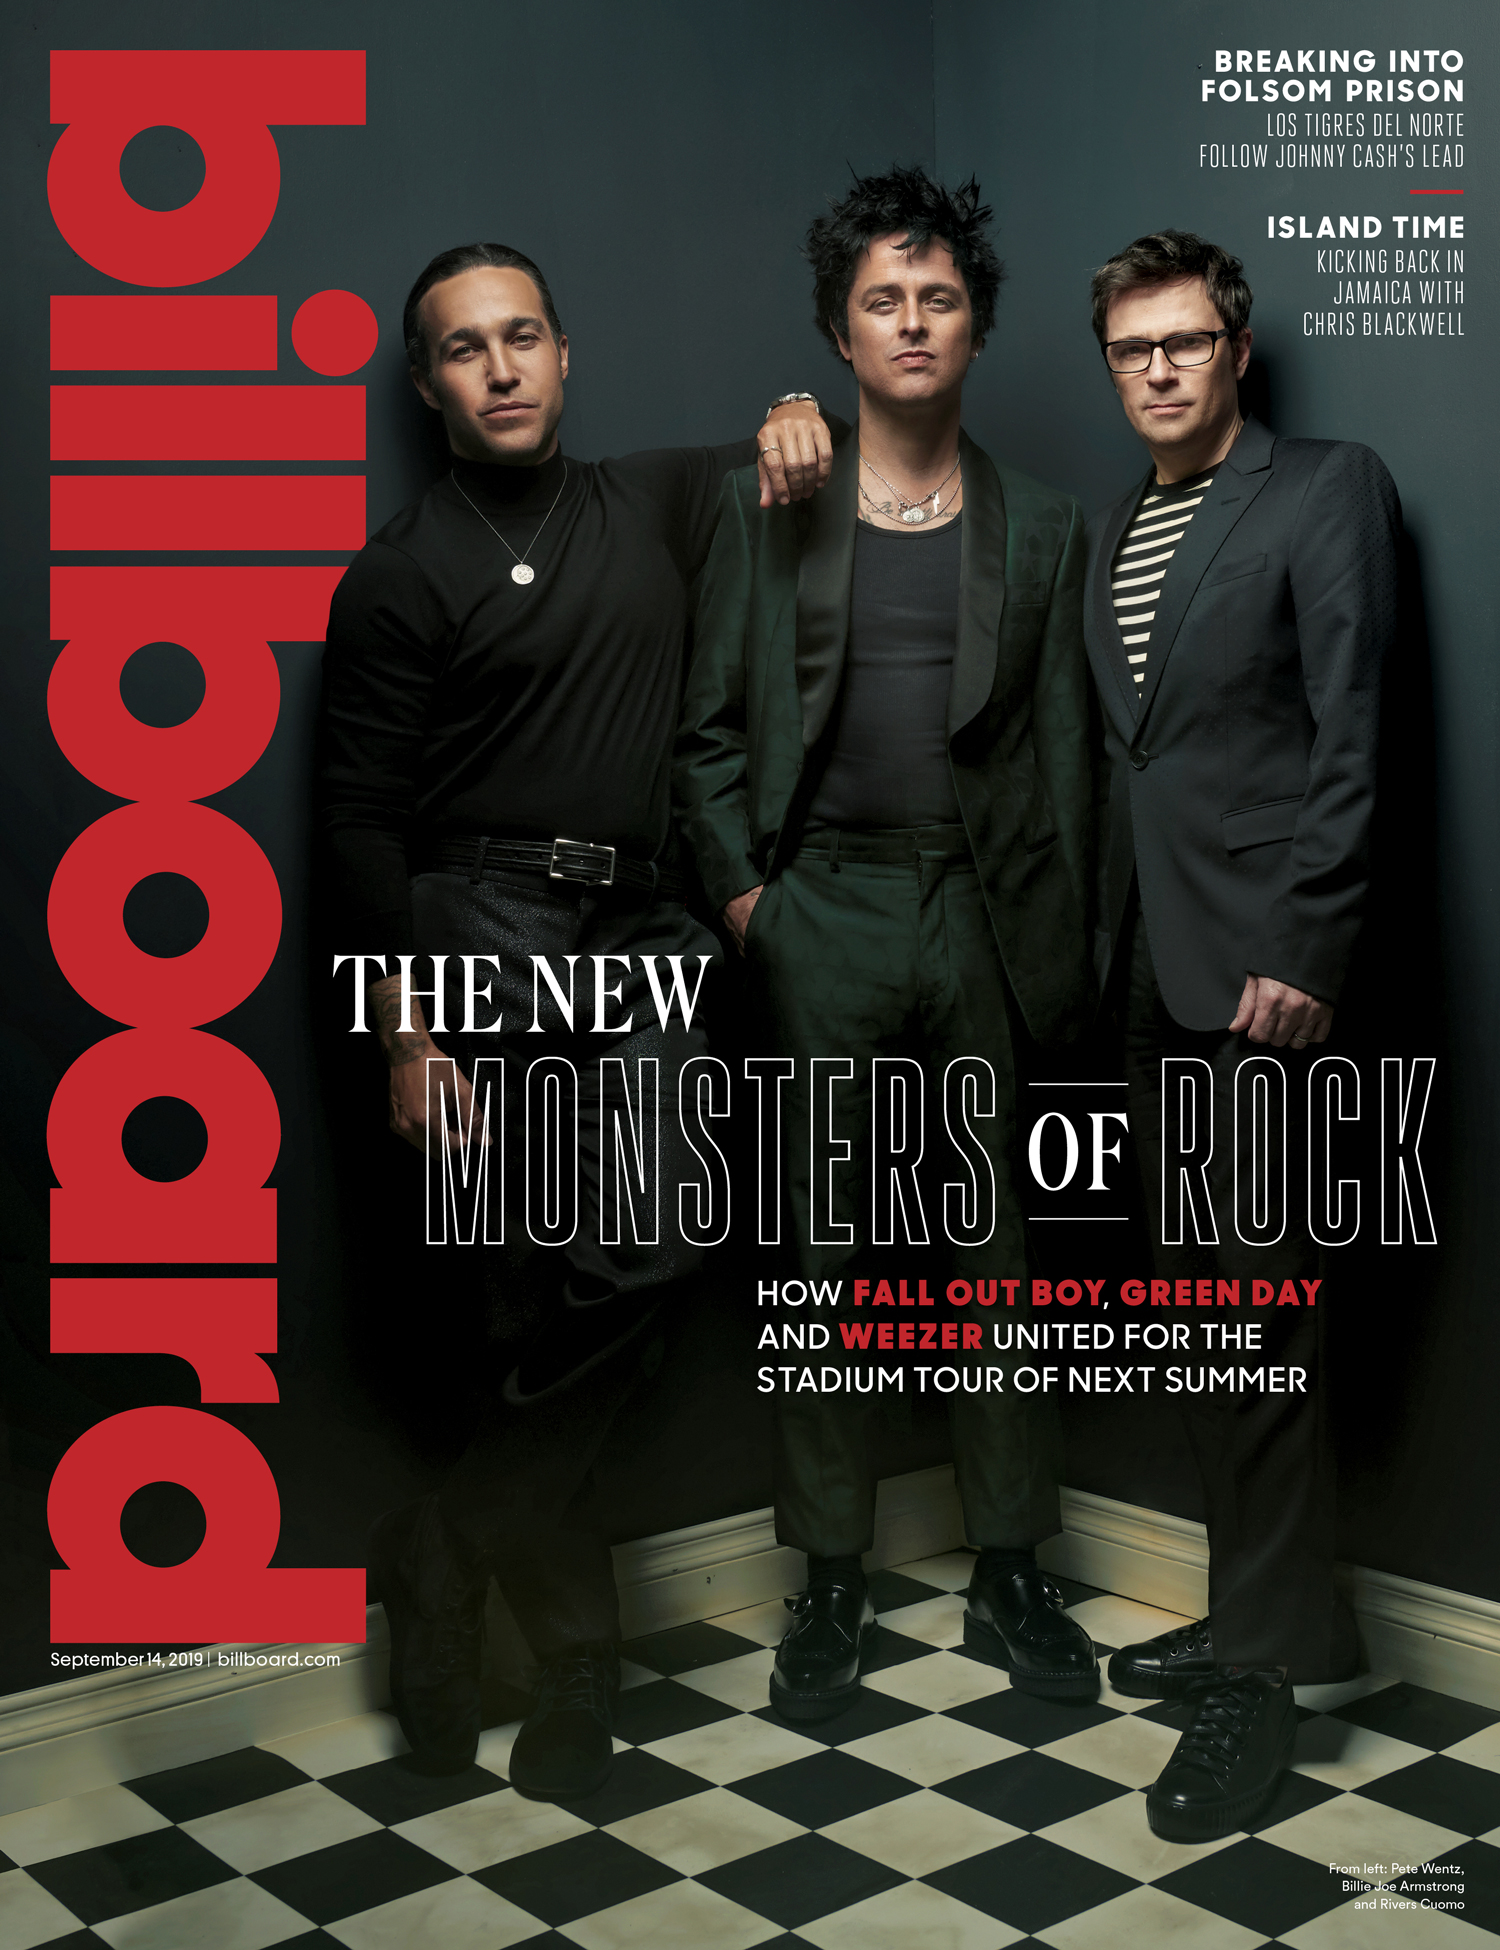 Pete Wentz, Billie Joe Armstrong, Rivers Cuomo, Billboard Magazine